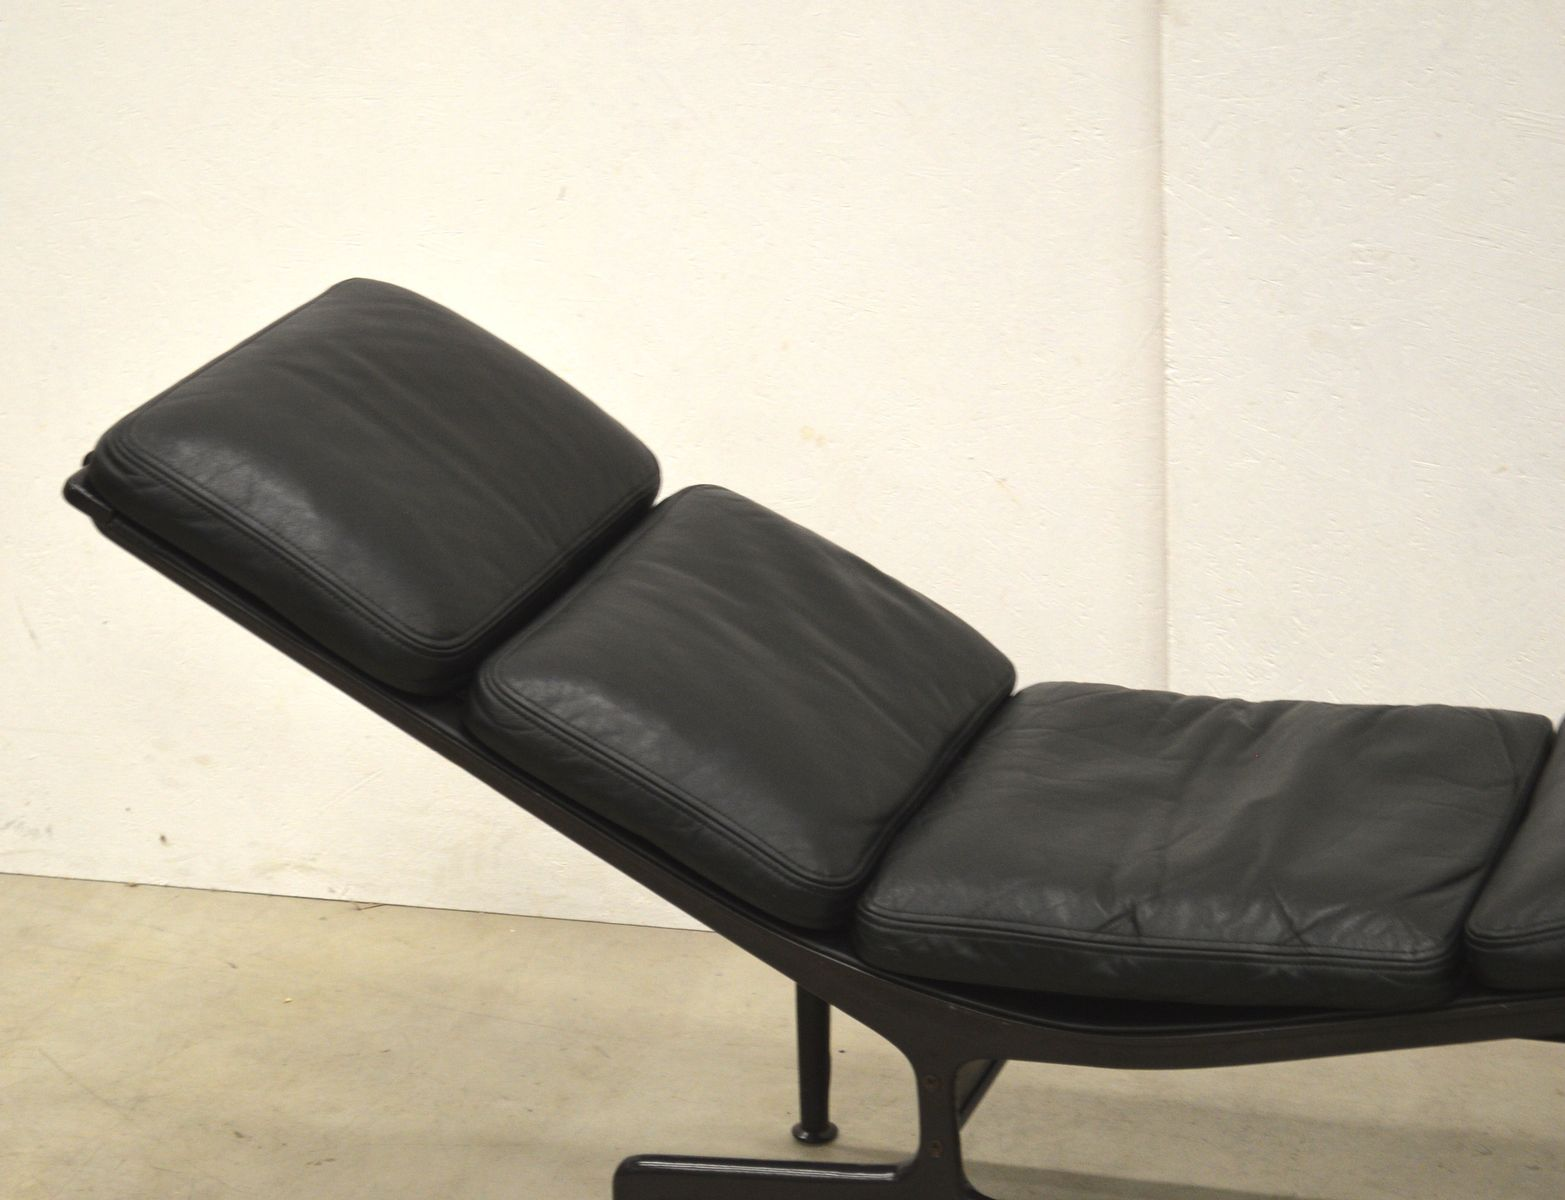 Es106 soft pad la chaise by charles ray eames for vitra 1980s for sale - Charles eames chaise ...